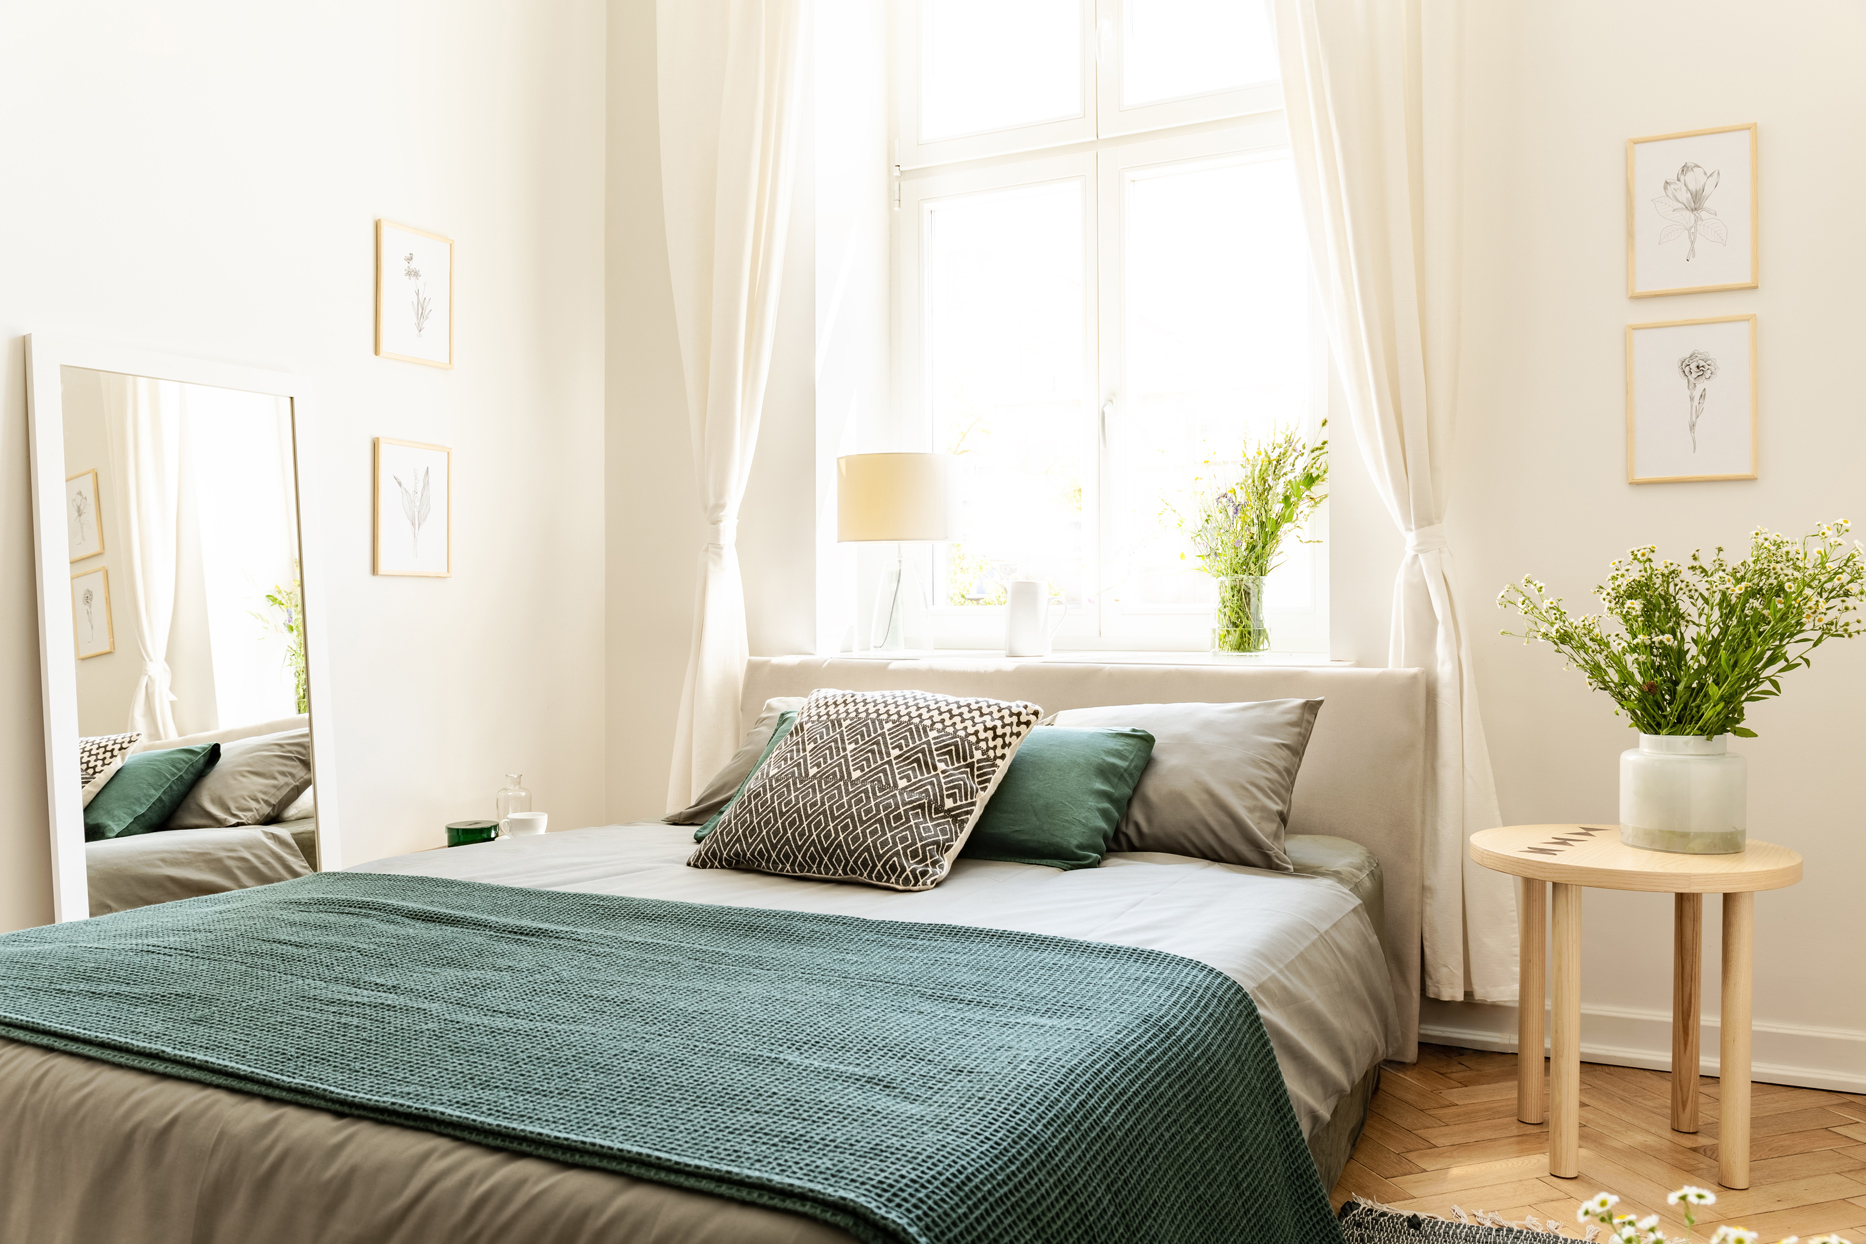 sunny bedroom with vase of daisies on nightstand